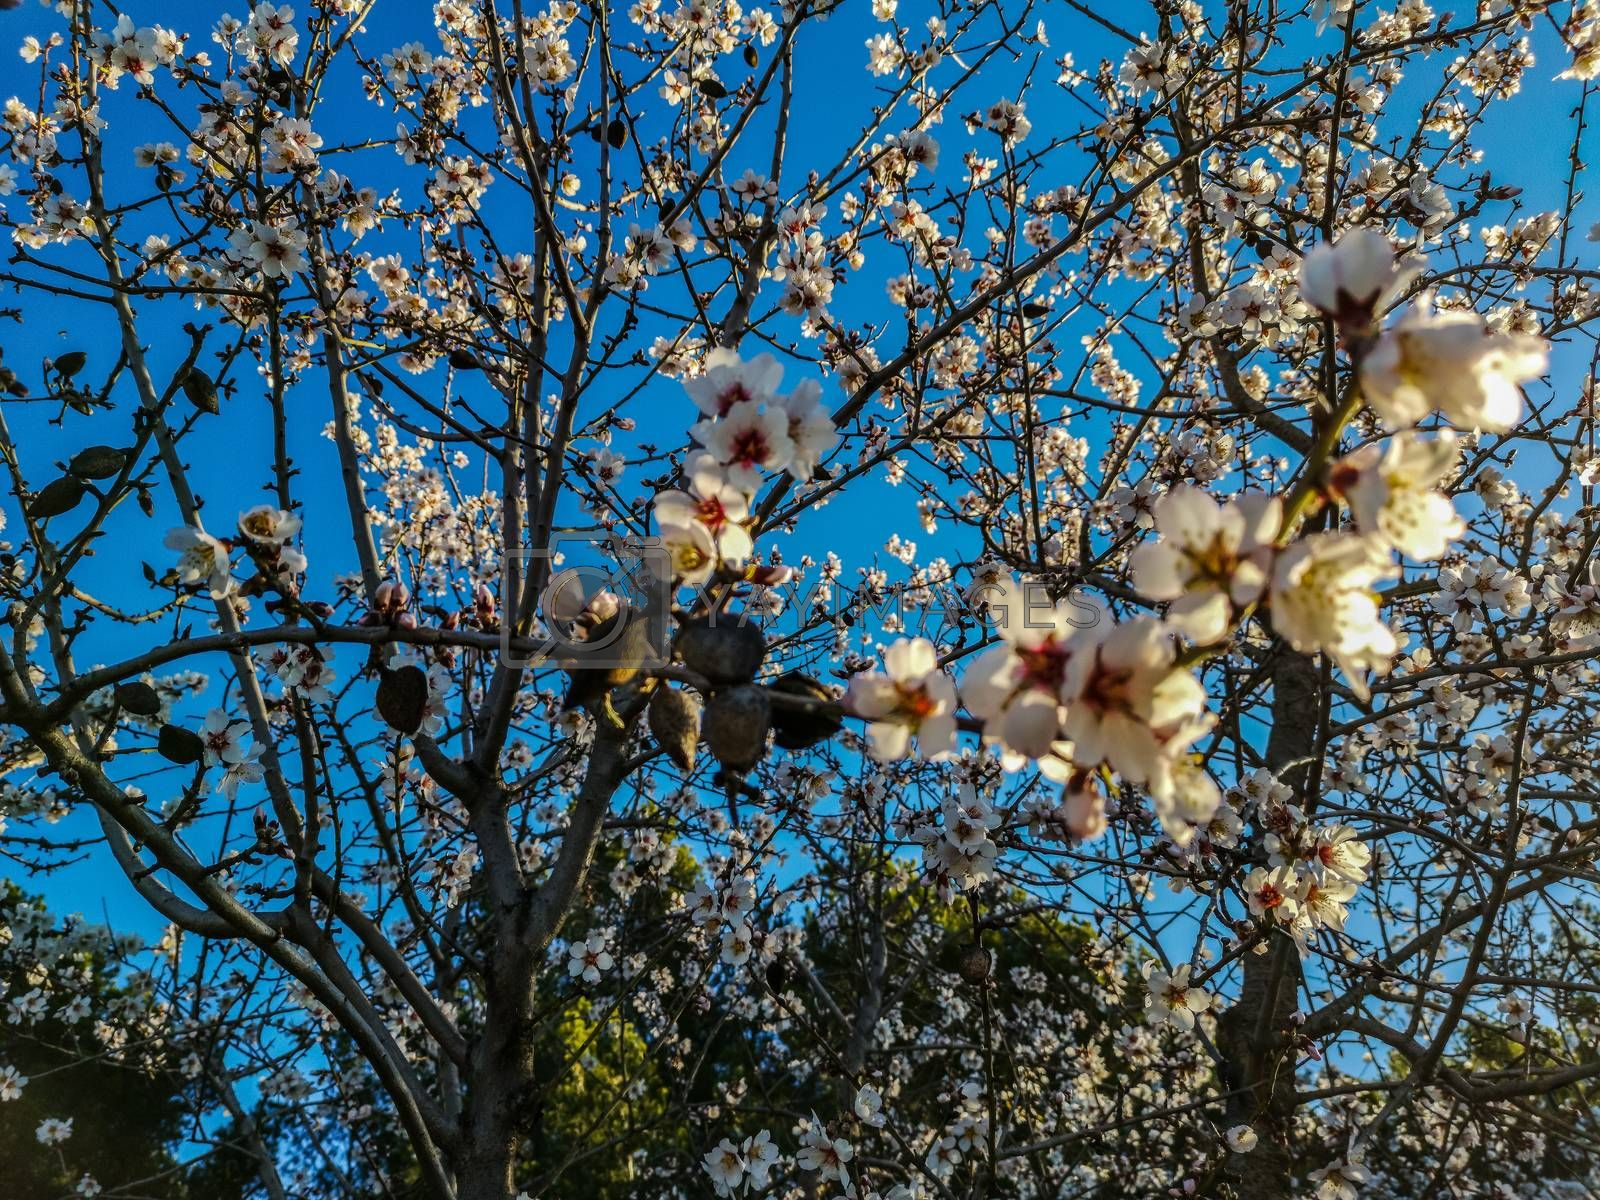 Almond tree in full bloom with the arrival of spring